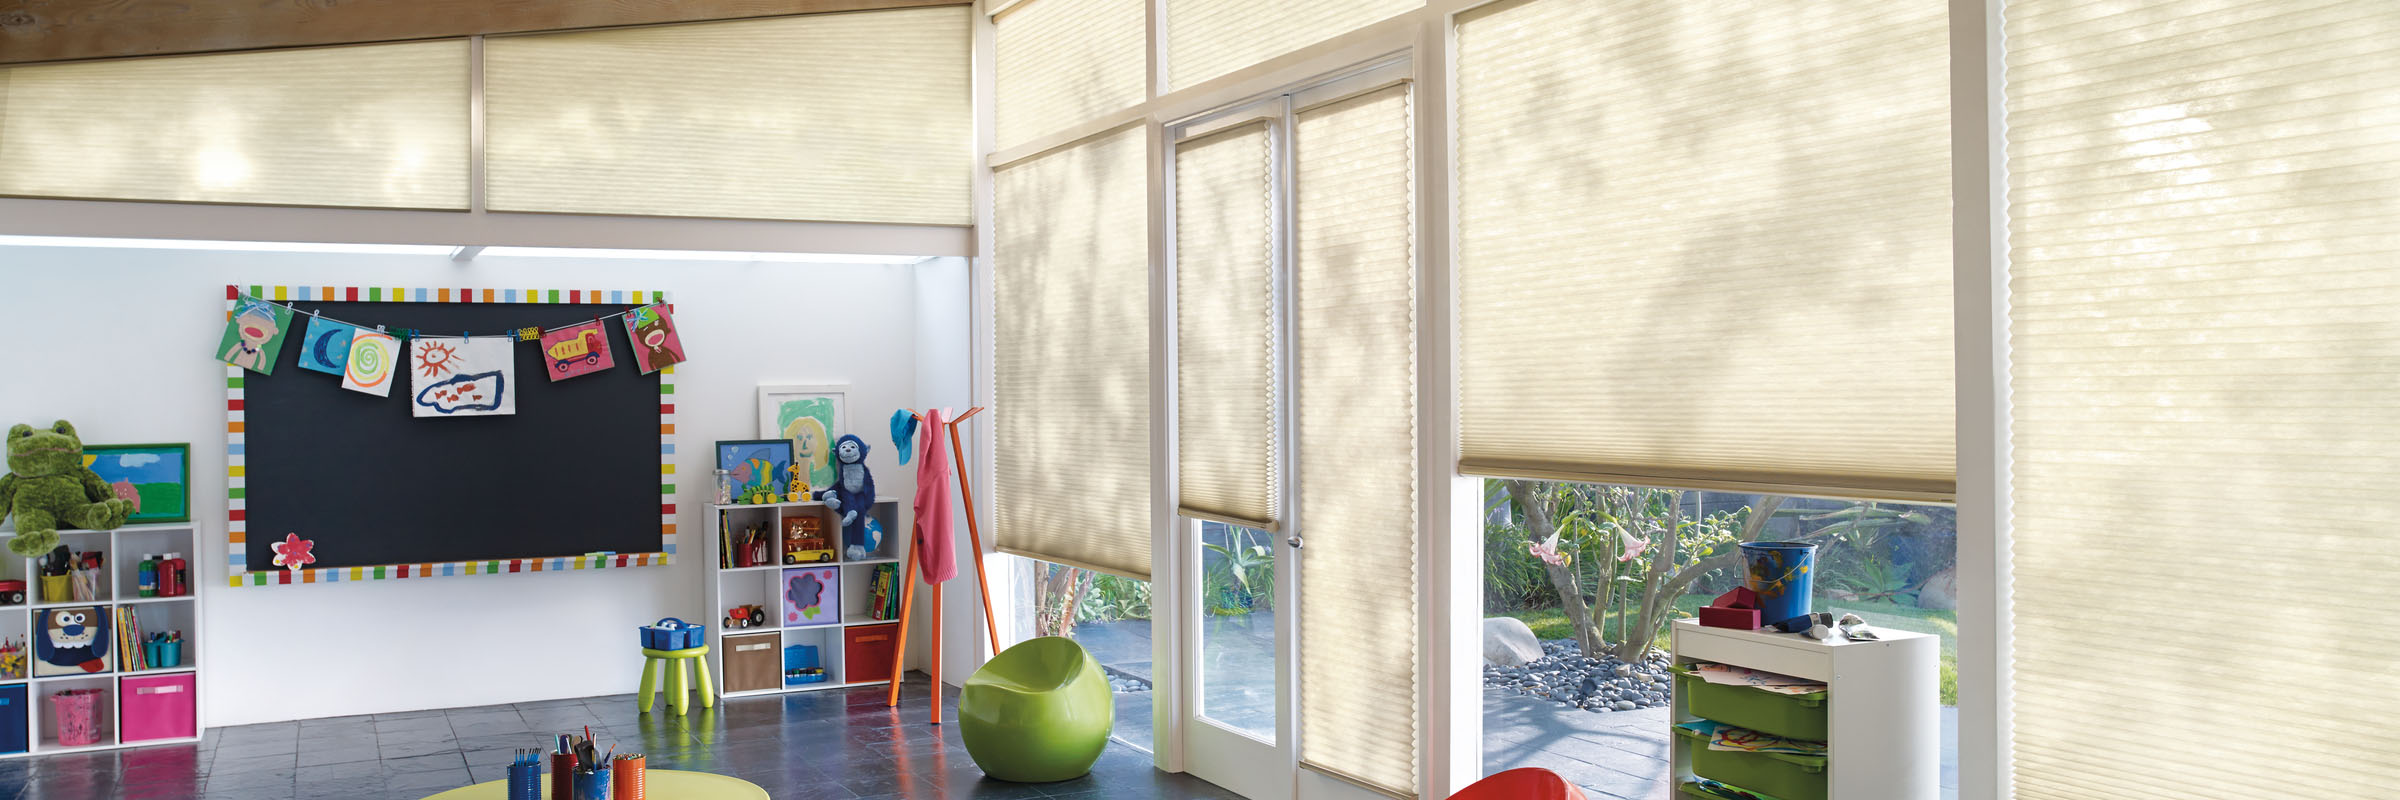 Cellular Blinds Applause Carousel